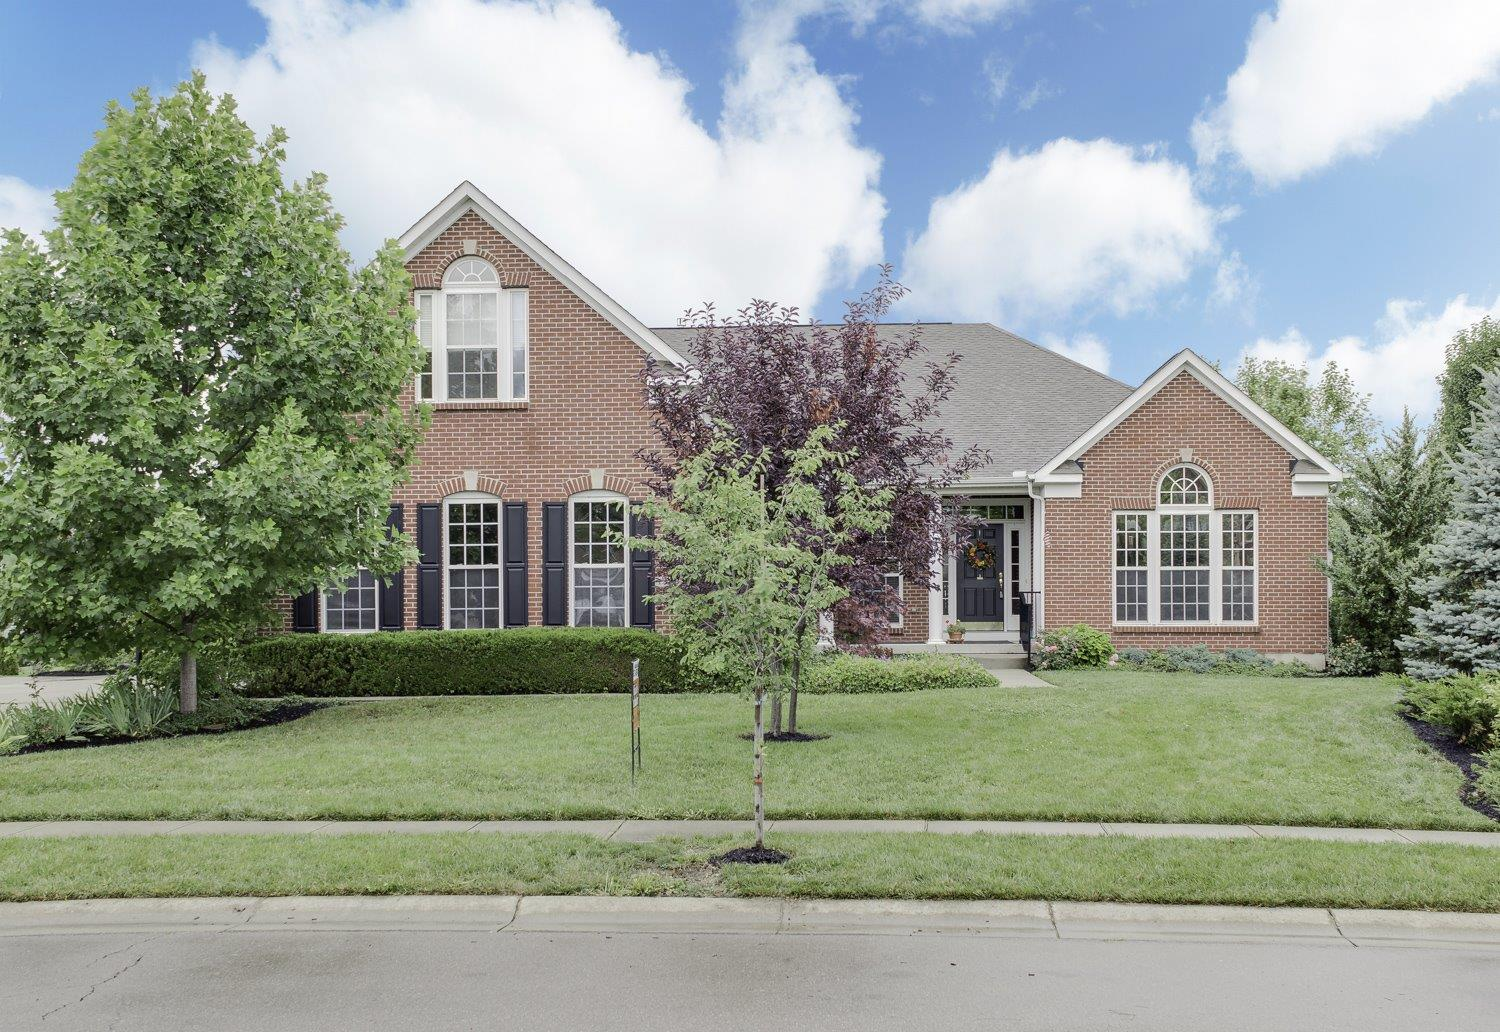 1223 Summerwood Drive, Lebanon, OH 45036